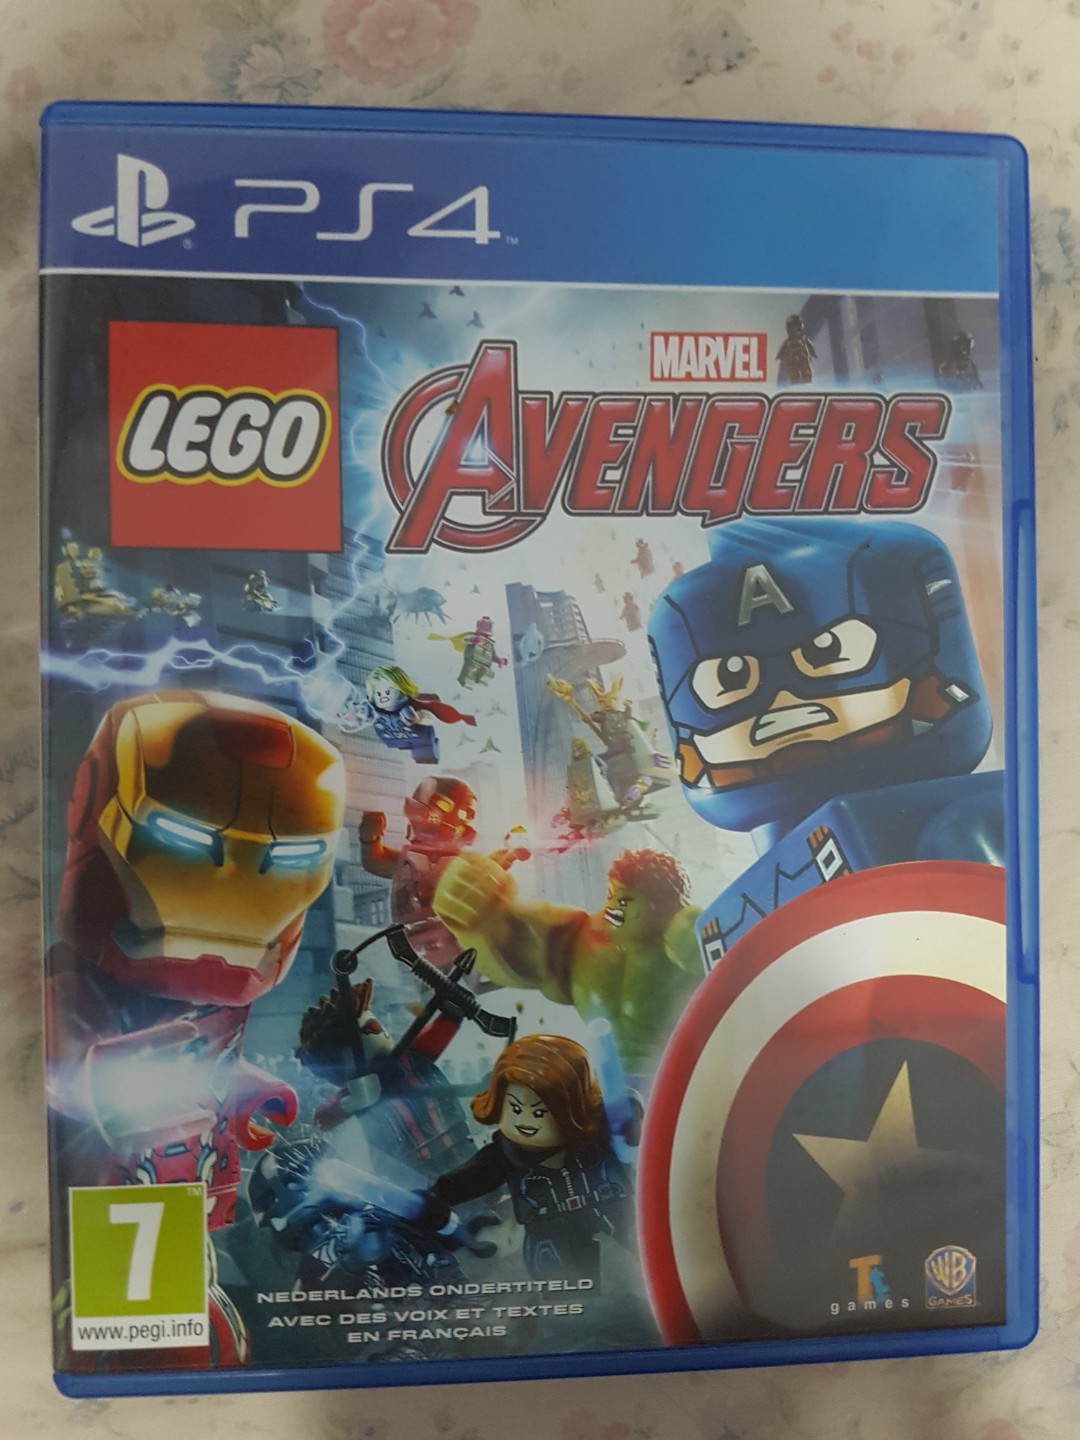 Lego Avengers Video Game Di Carousell Kaset Ps4 Bd Titanfall 2 Photo